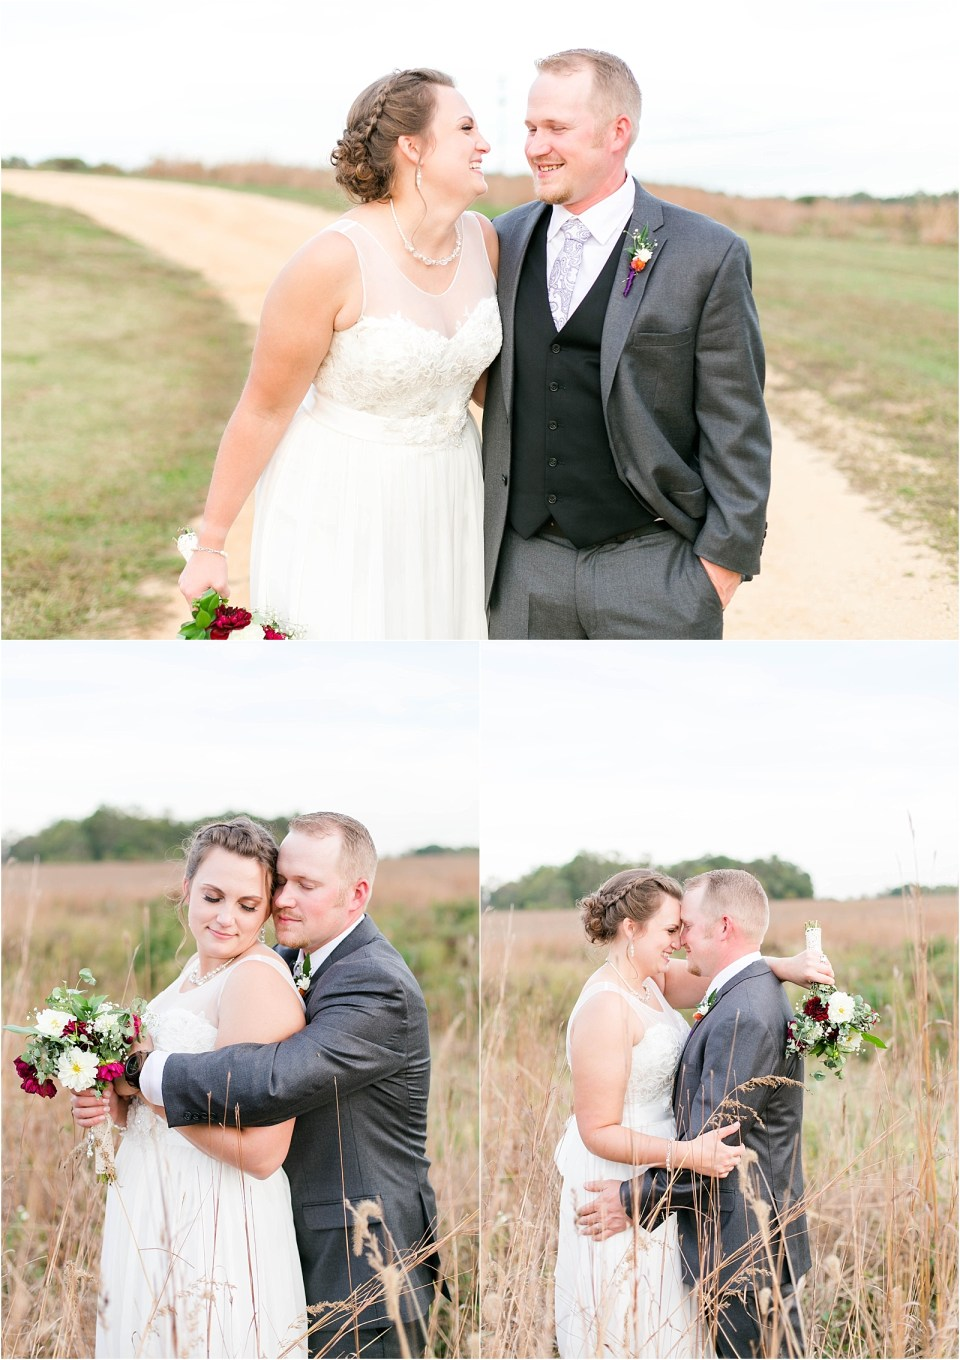 Southern Maryland Wedding Photo